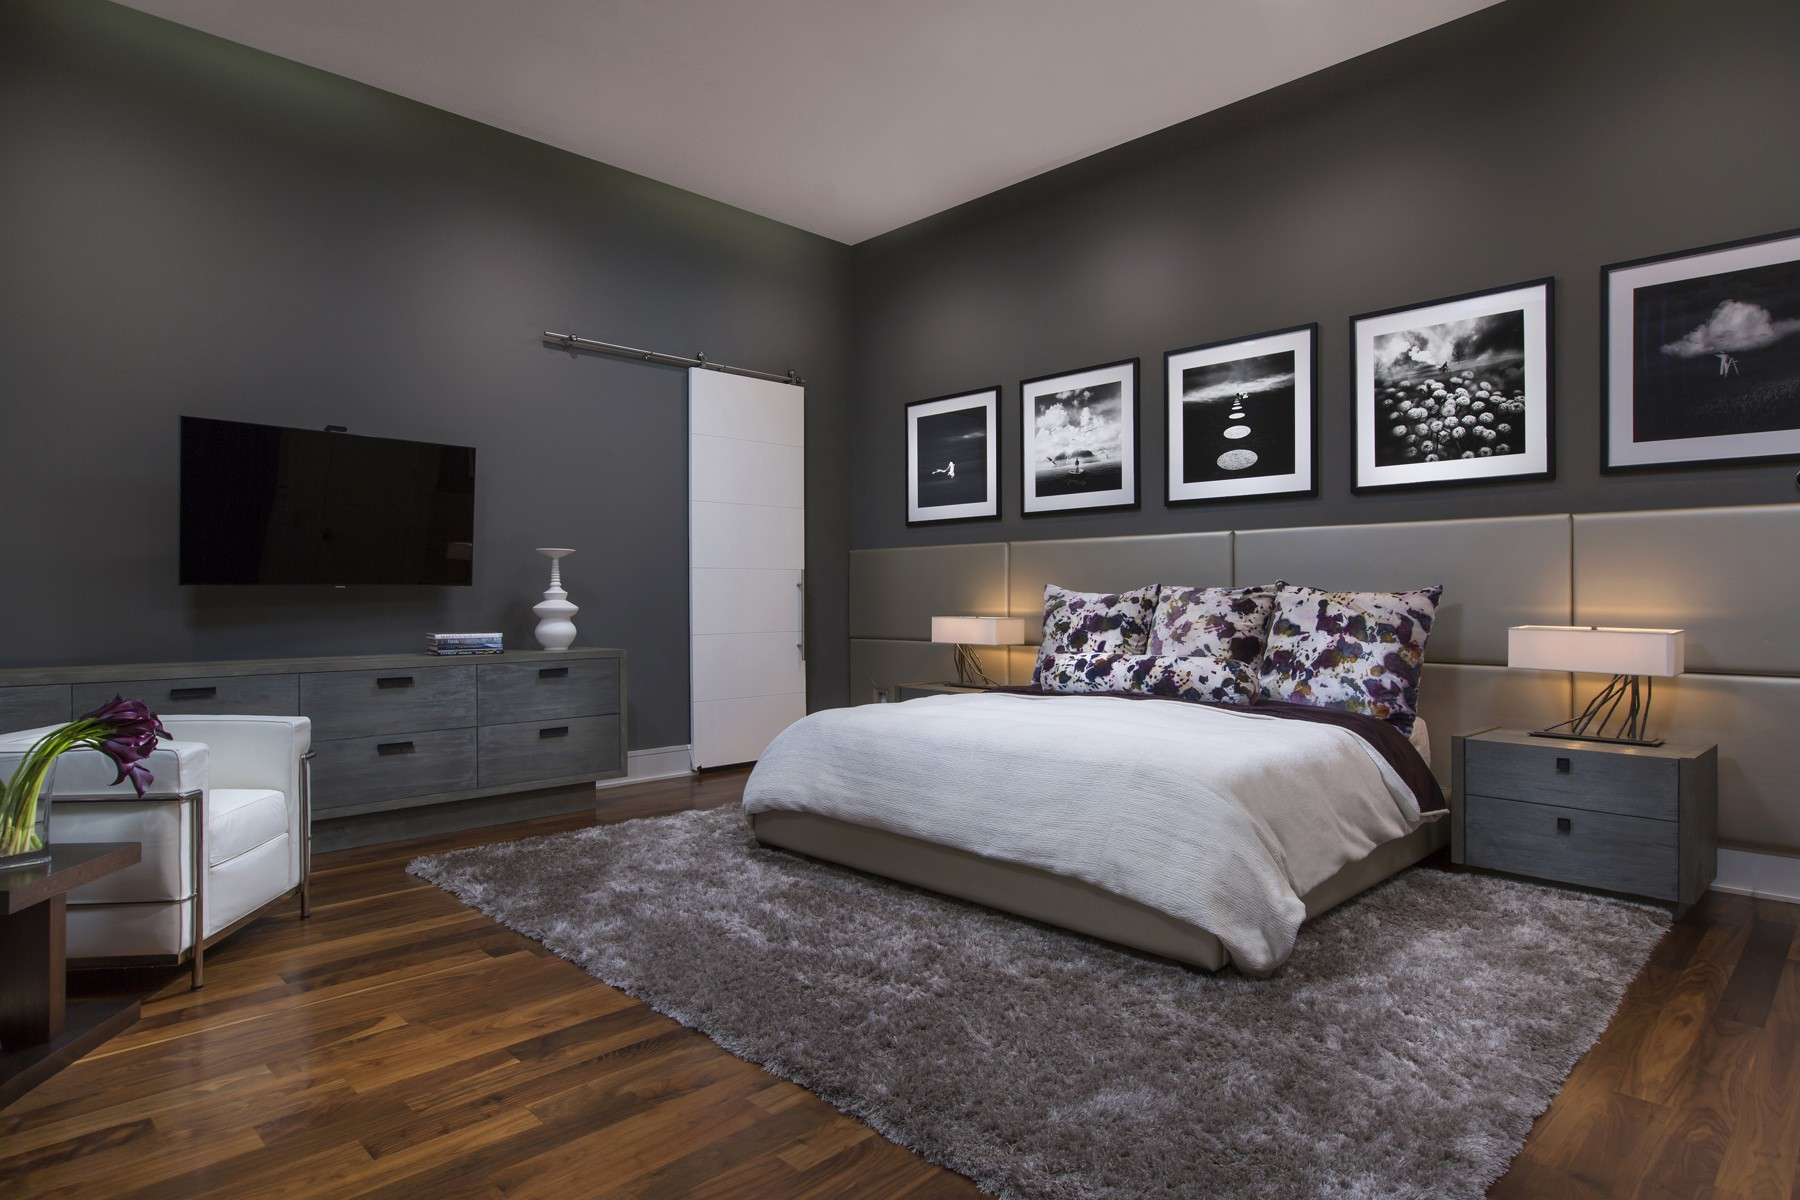 Modena custom residence phil kean design group for Bedroom trends 2016